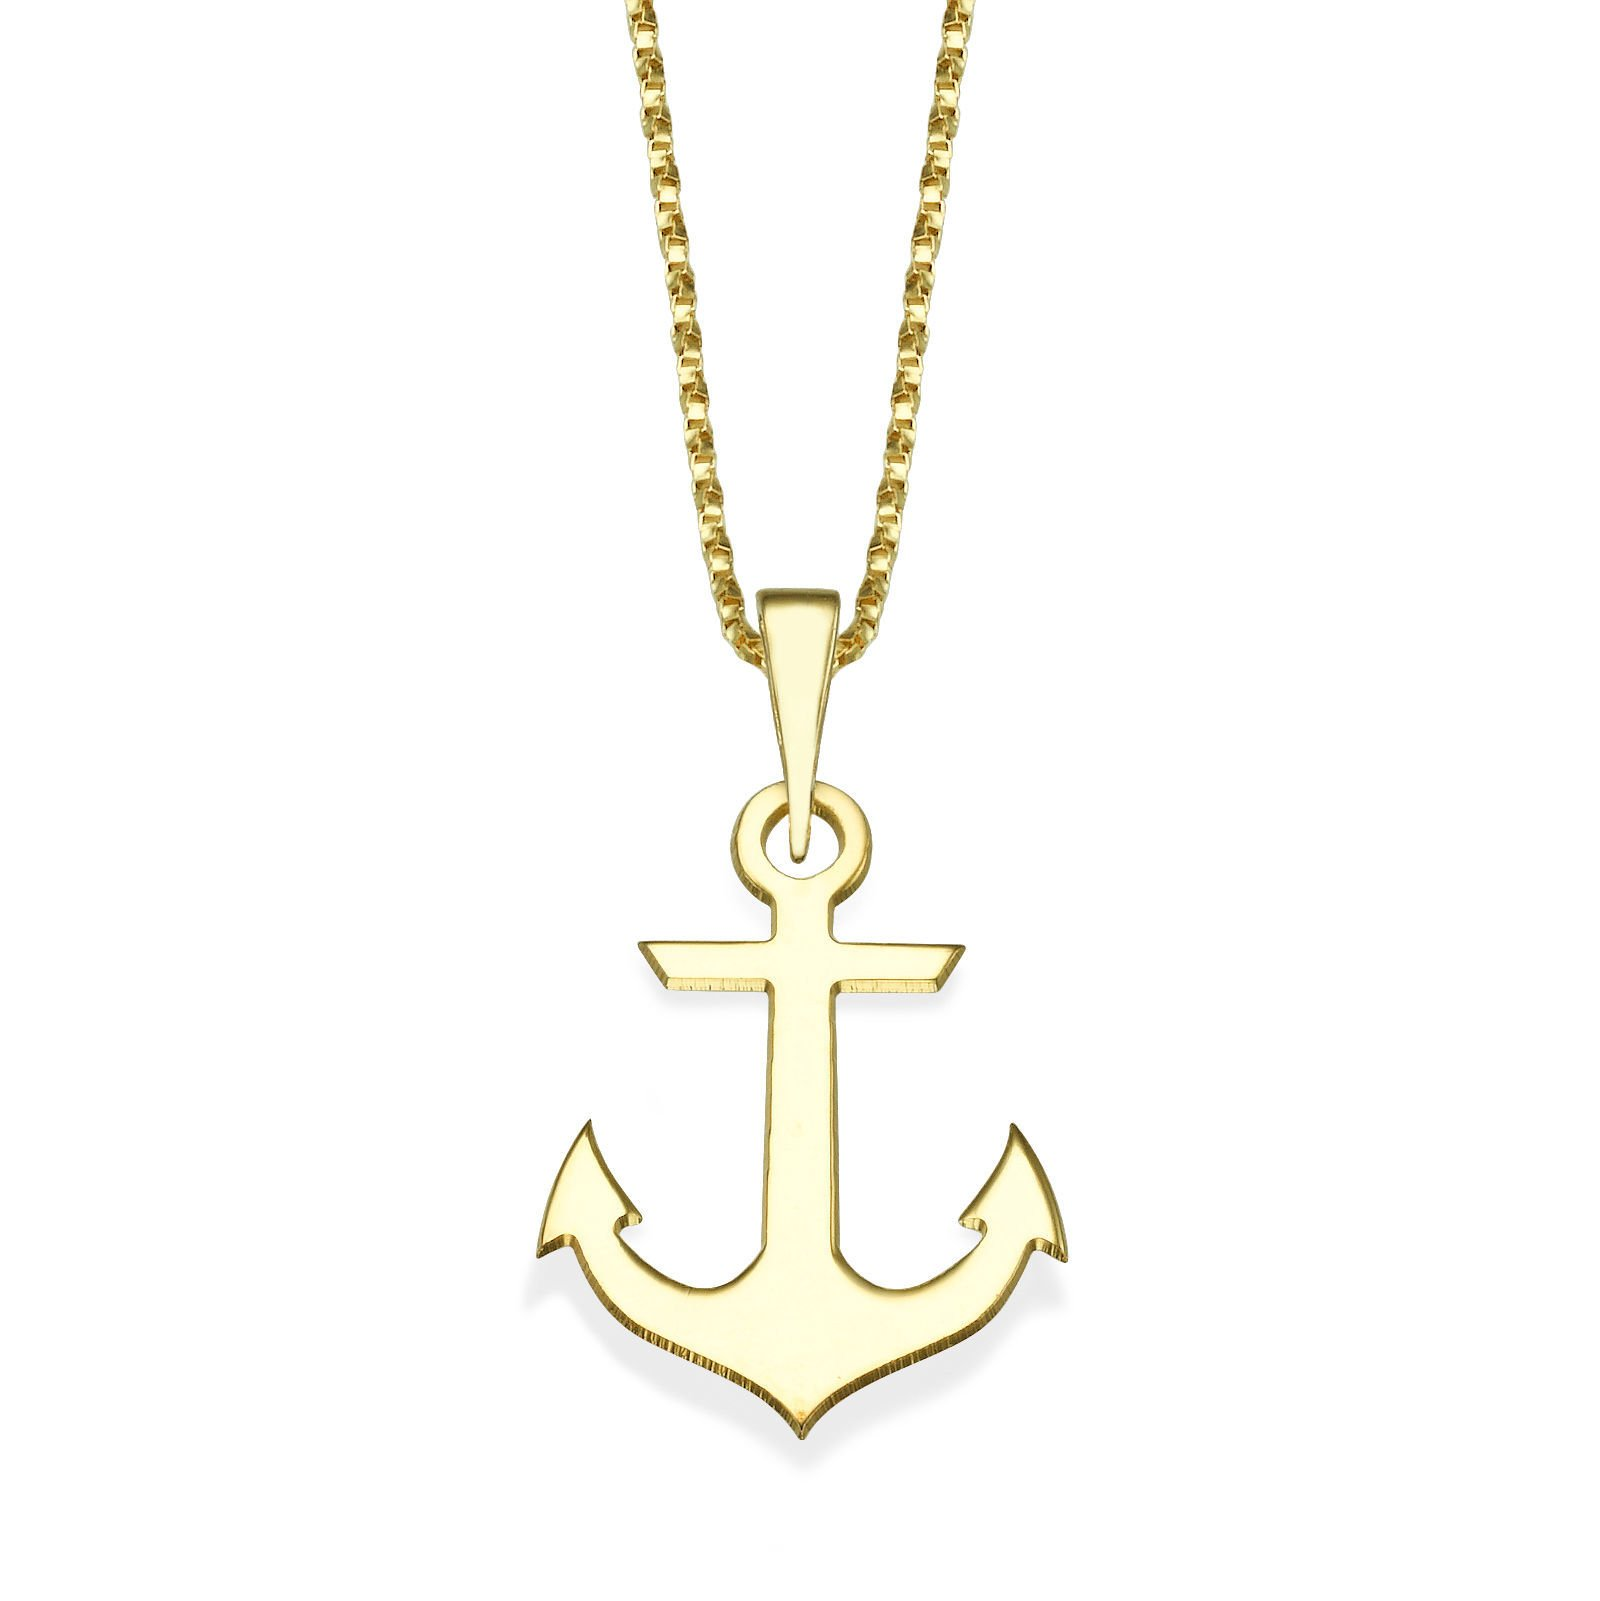 14K Yellow Gold Golden Anchor Pendant With Necklace by youme Gold Jewelry